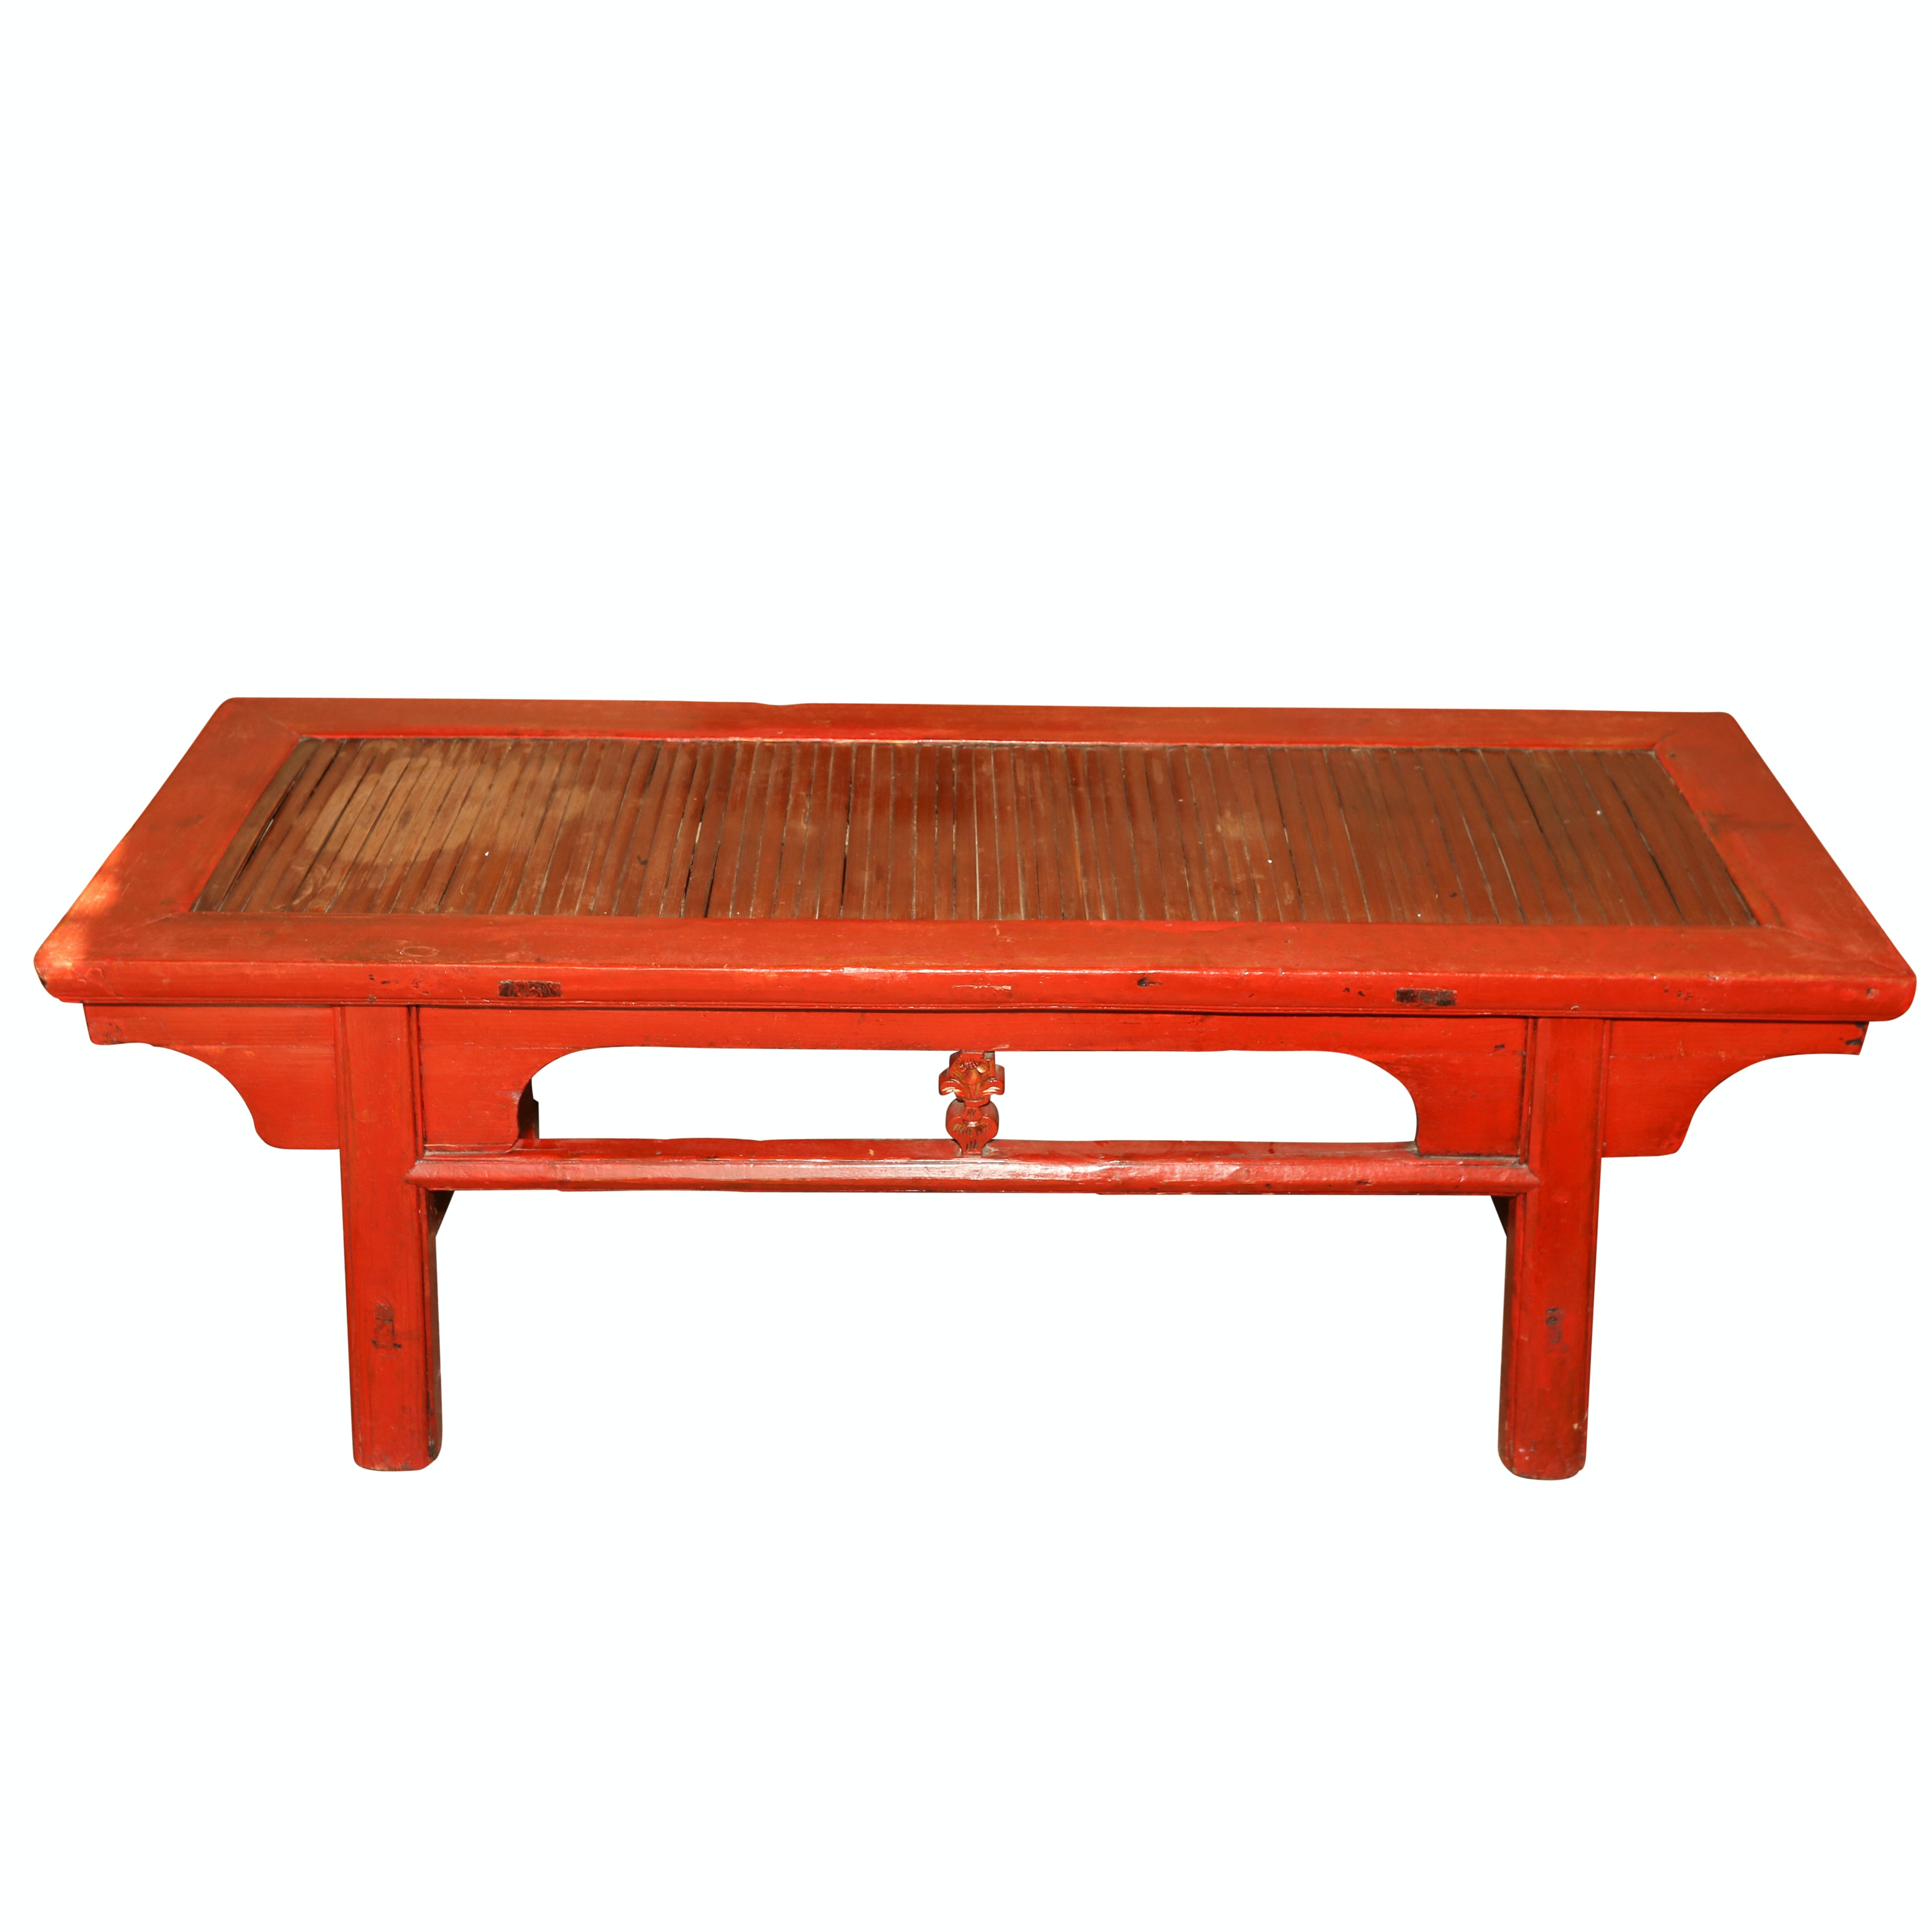 Chinese Red Lacquered Wood Coffee Table, Mid-20th Century